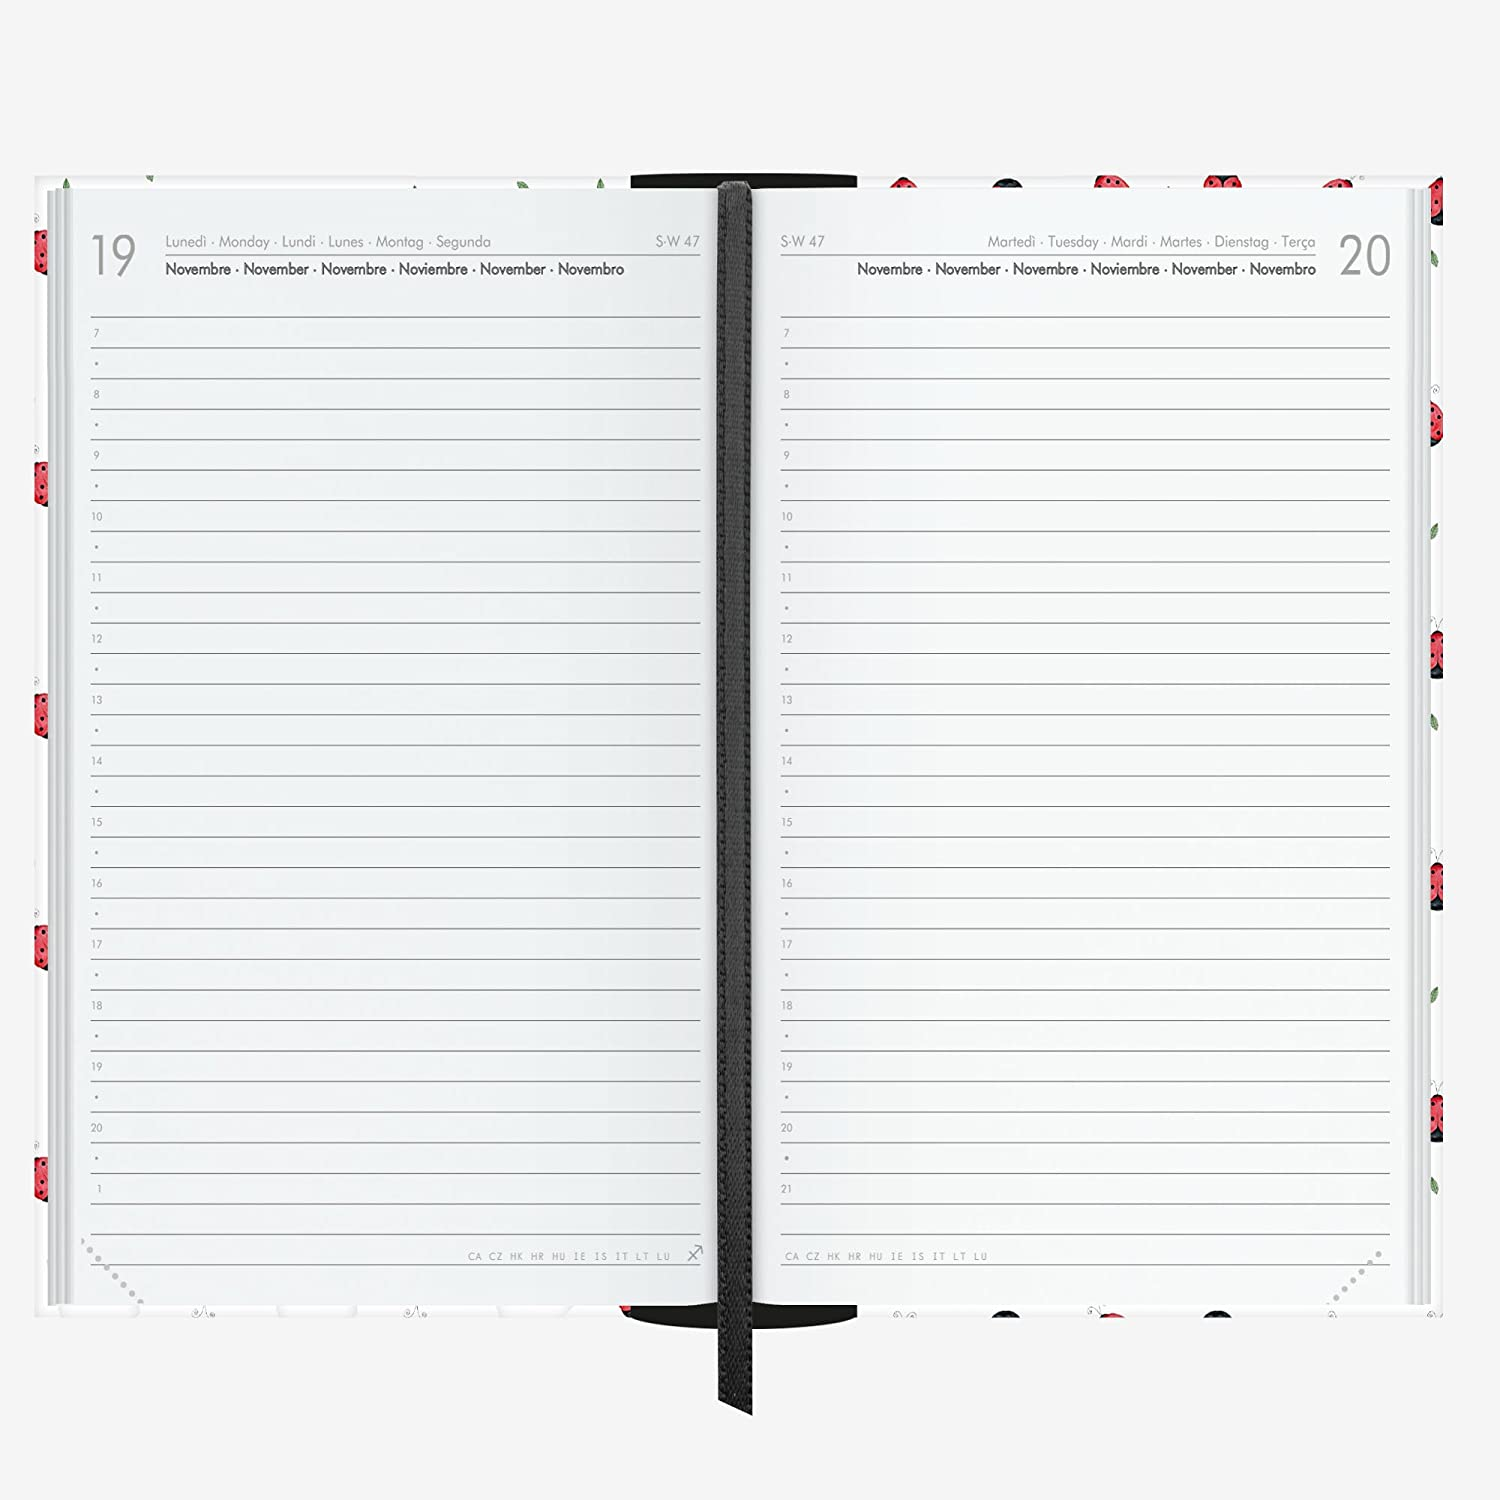 Amazon.com : Links ag160327 Weekly Agenda 16 Months, 480 ...